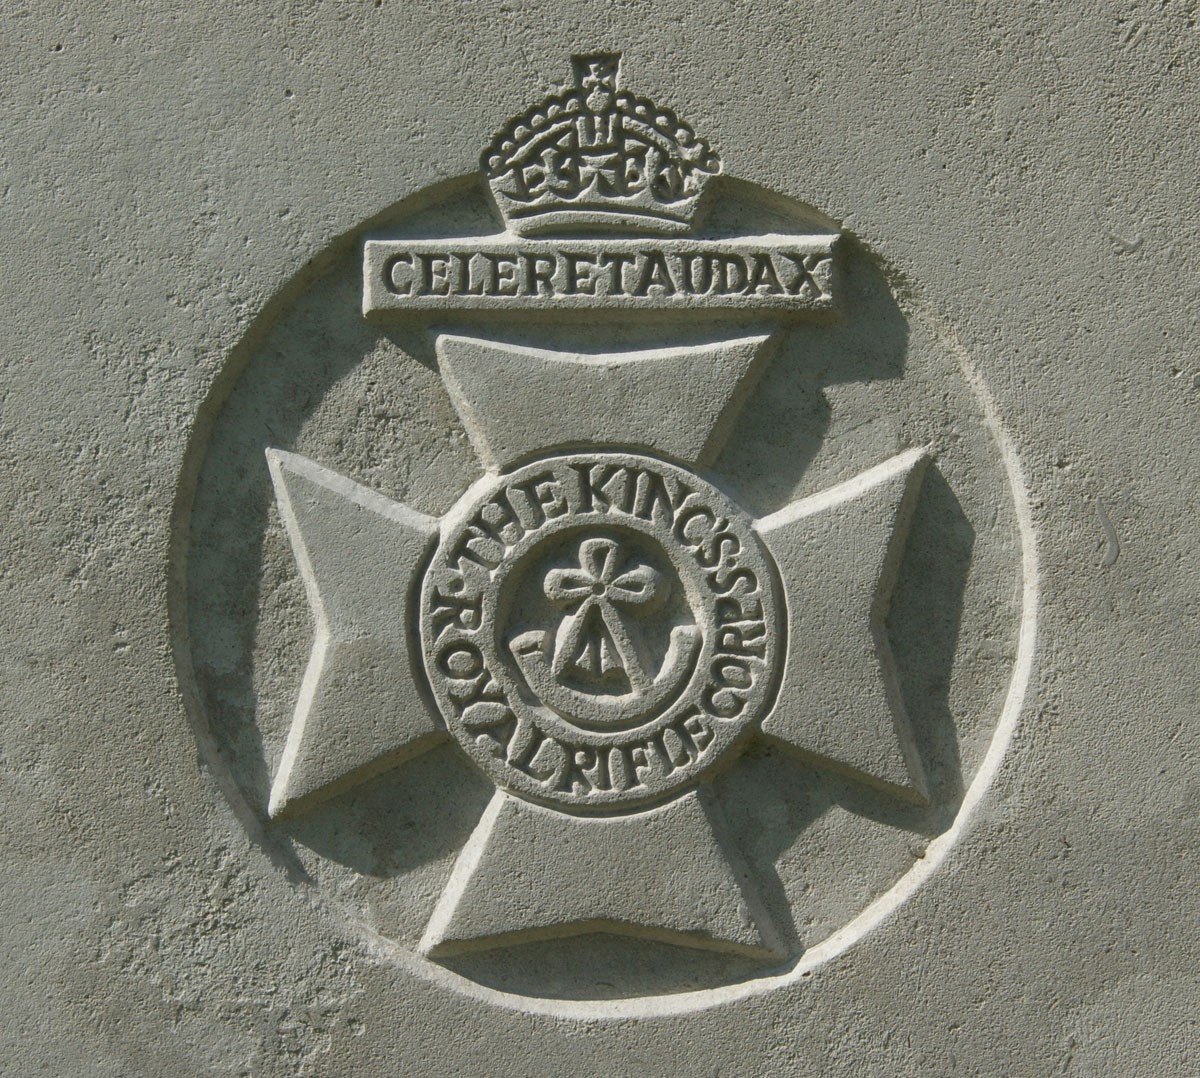 Kings Royal Rifle Corps badge